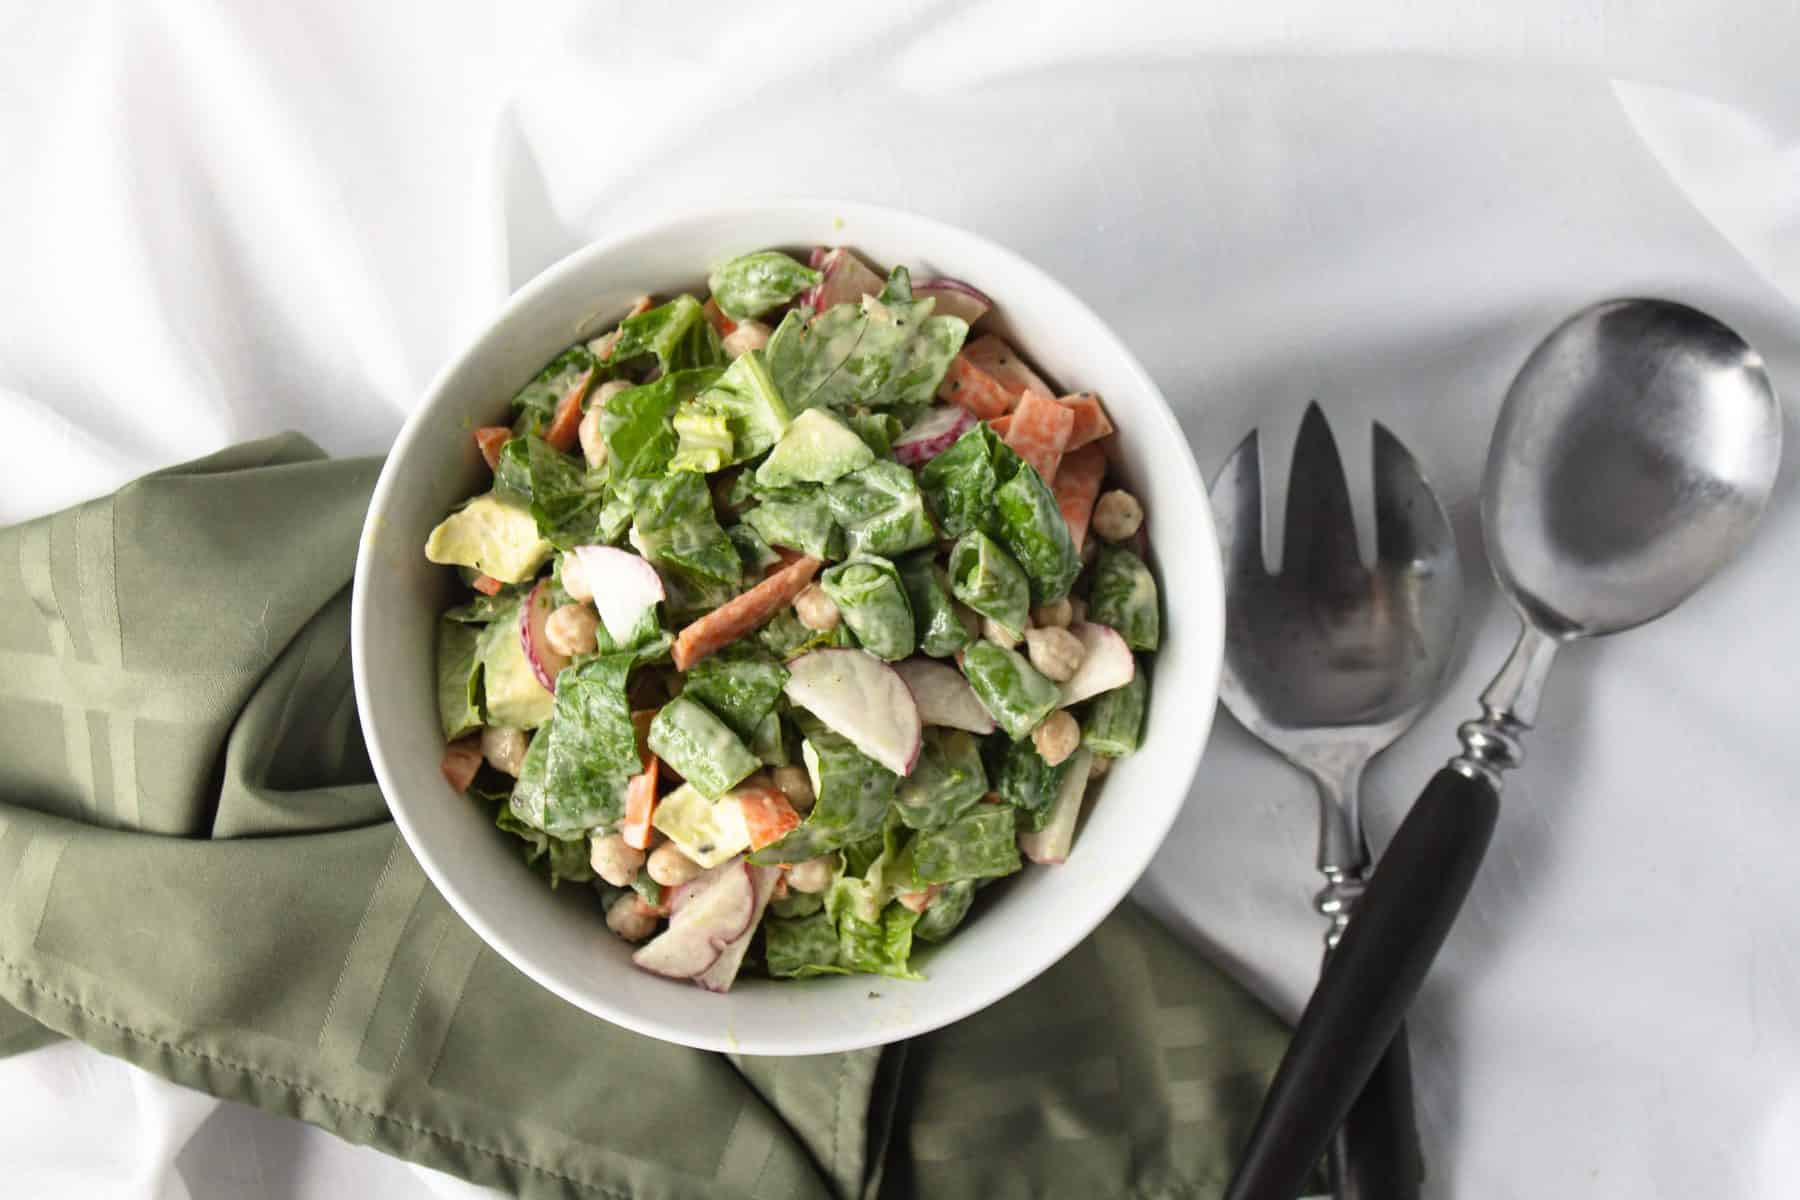 overhead view of veggie salad in white bowl with green napkin and fork and spoon